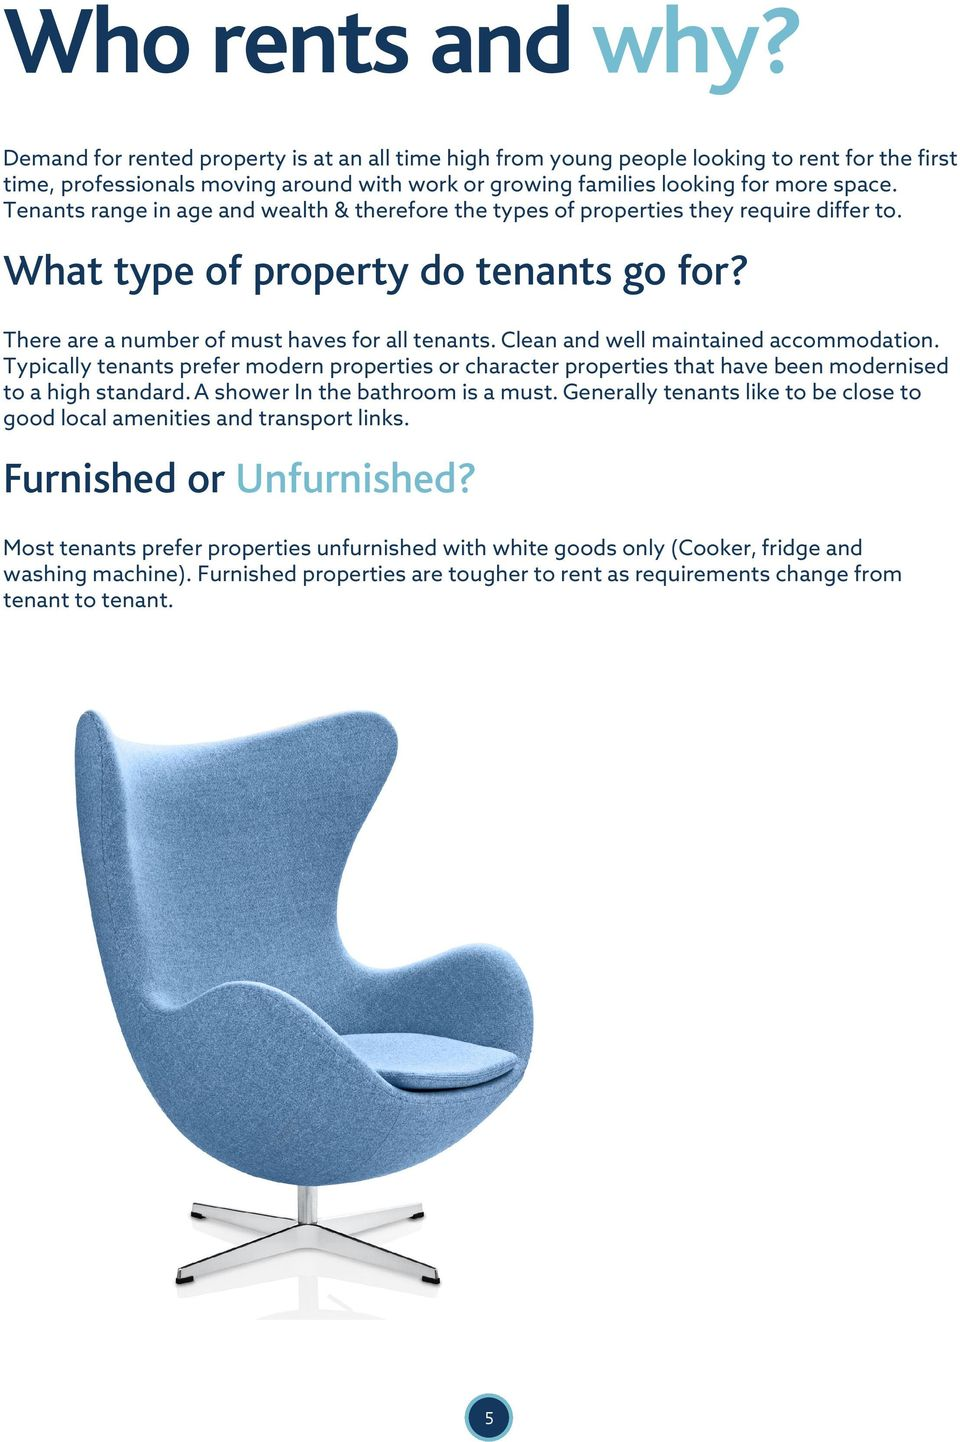 Tenants range in age and wealth & therefore the types of properties they require differ to. What type of property do tenants go for? There are a number of must haves for all tenants.